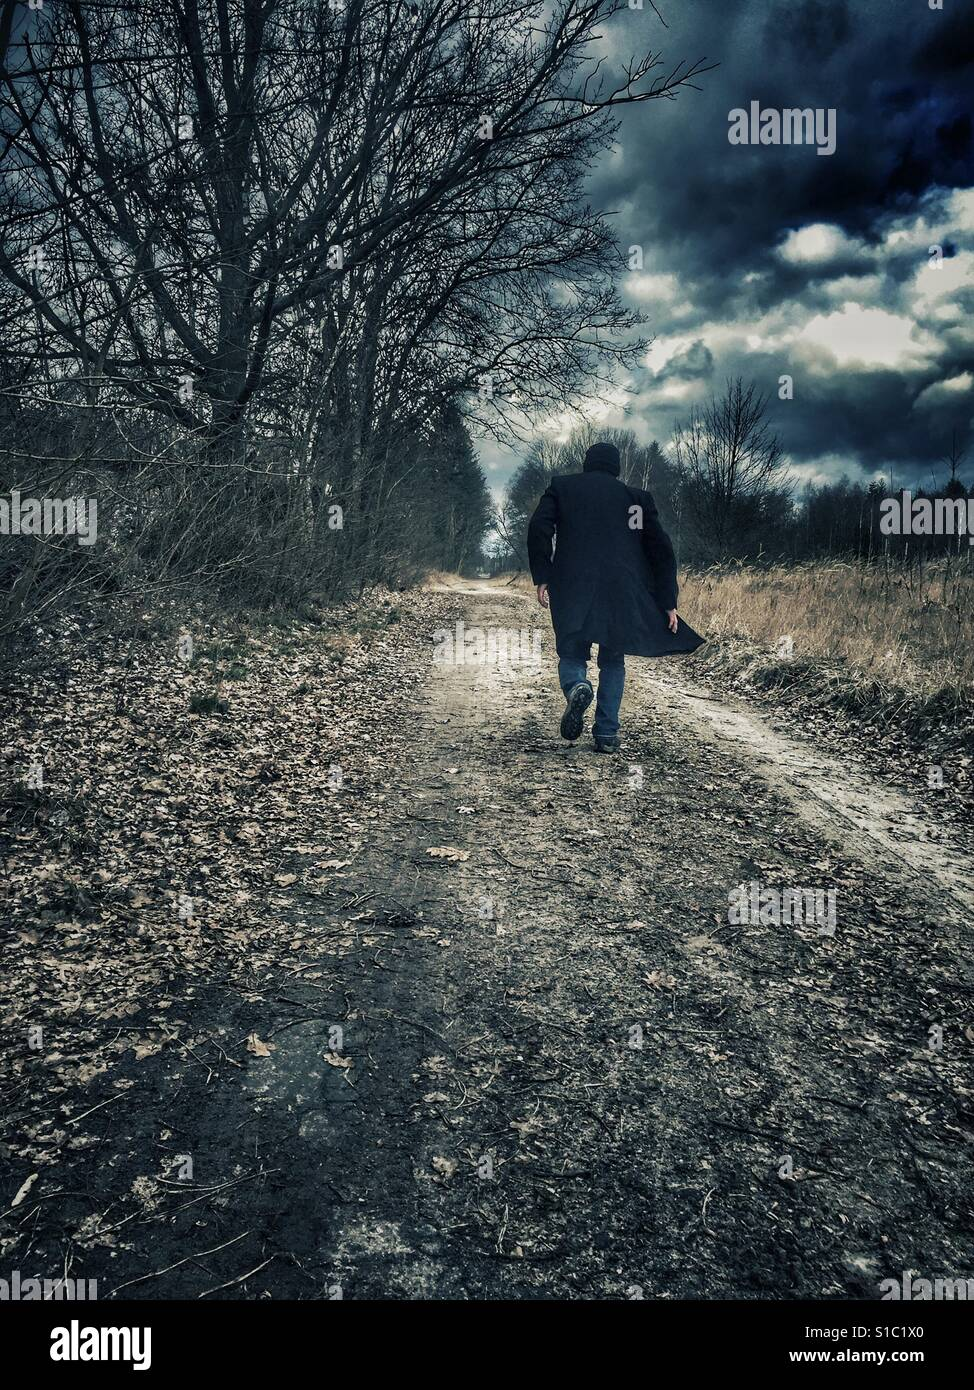 Man wearing a coat running away in the countryside - Stock Image